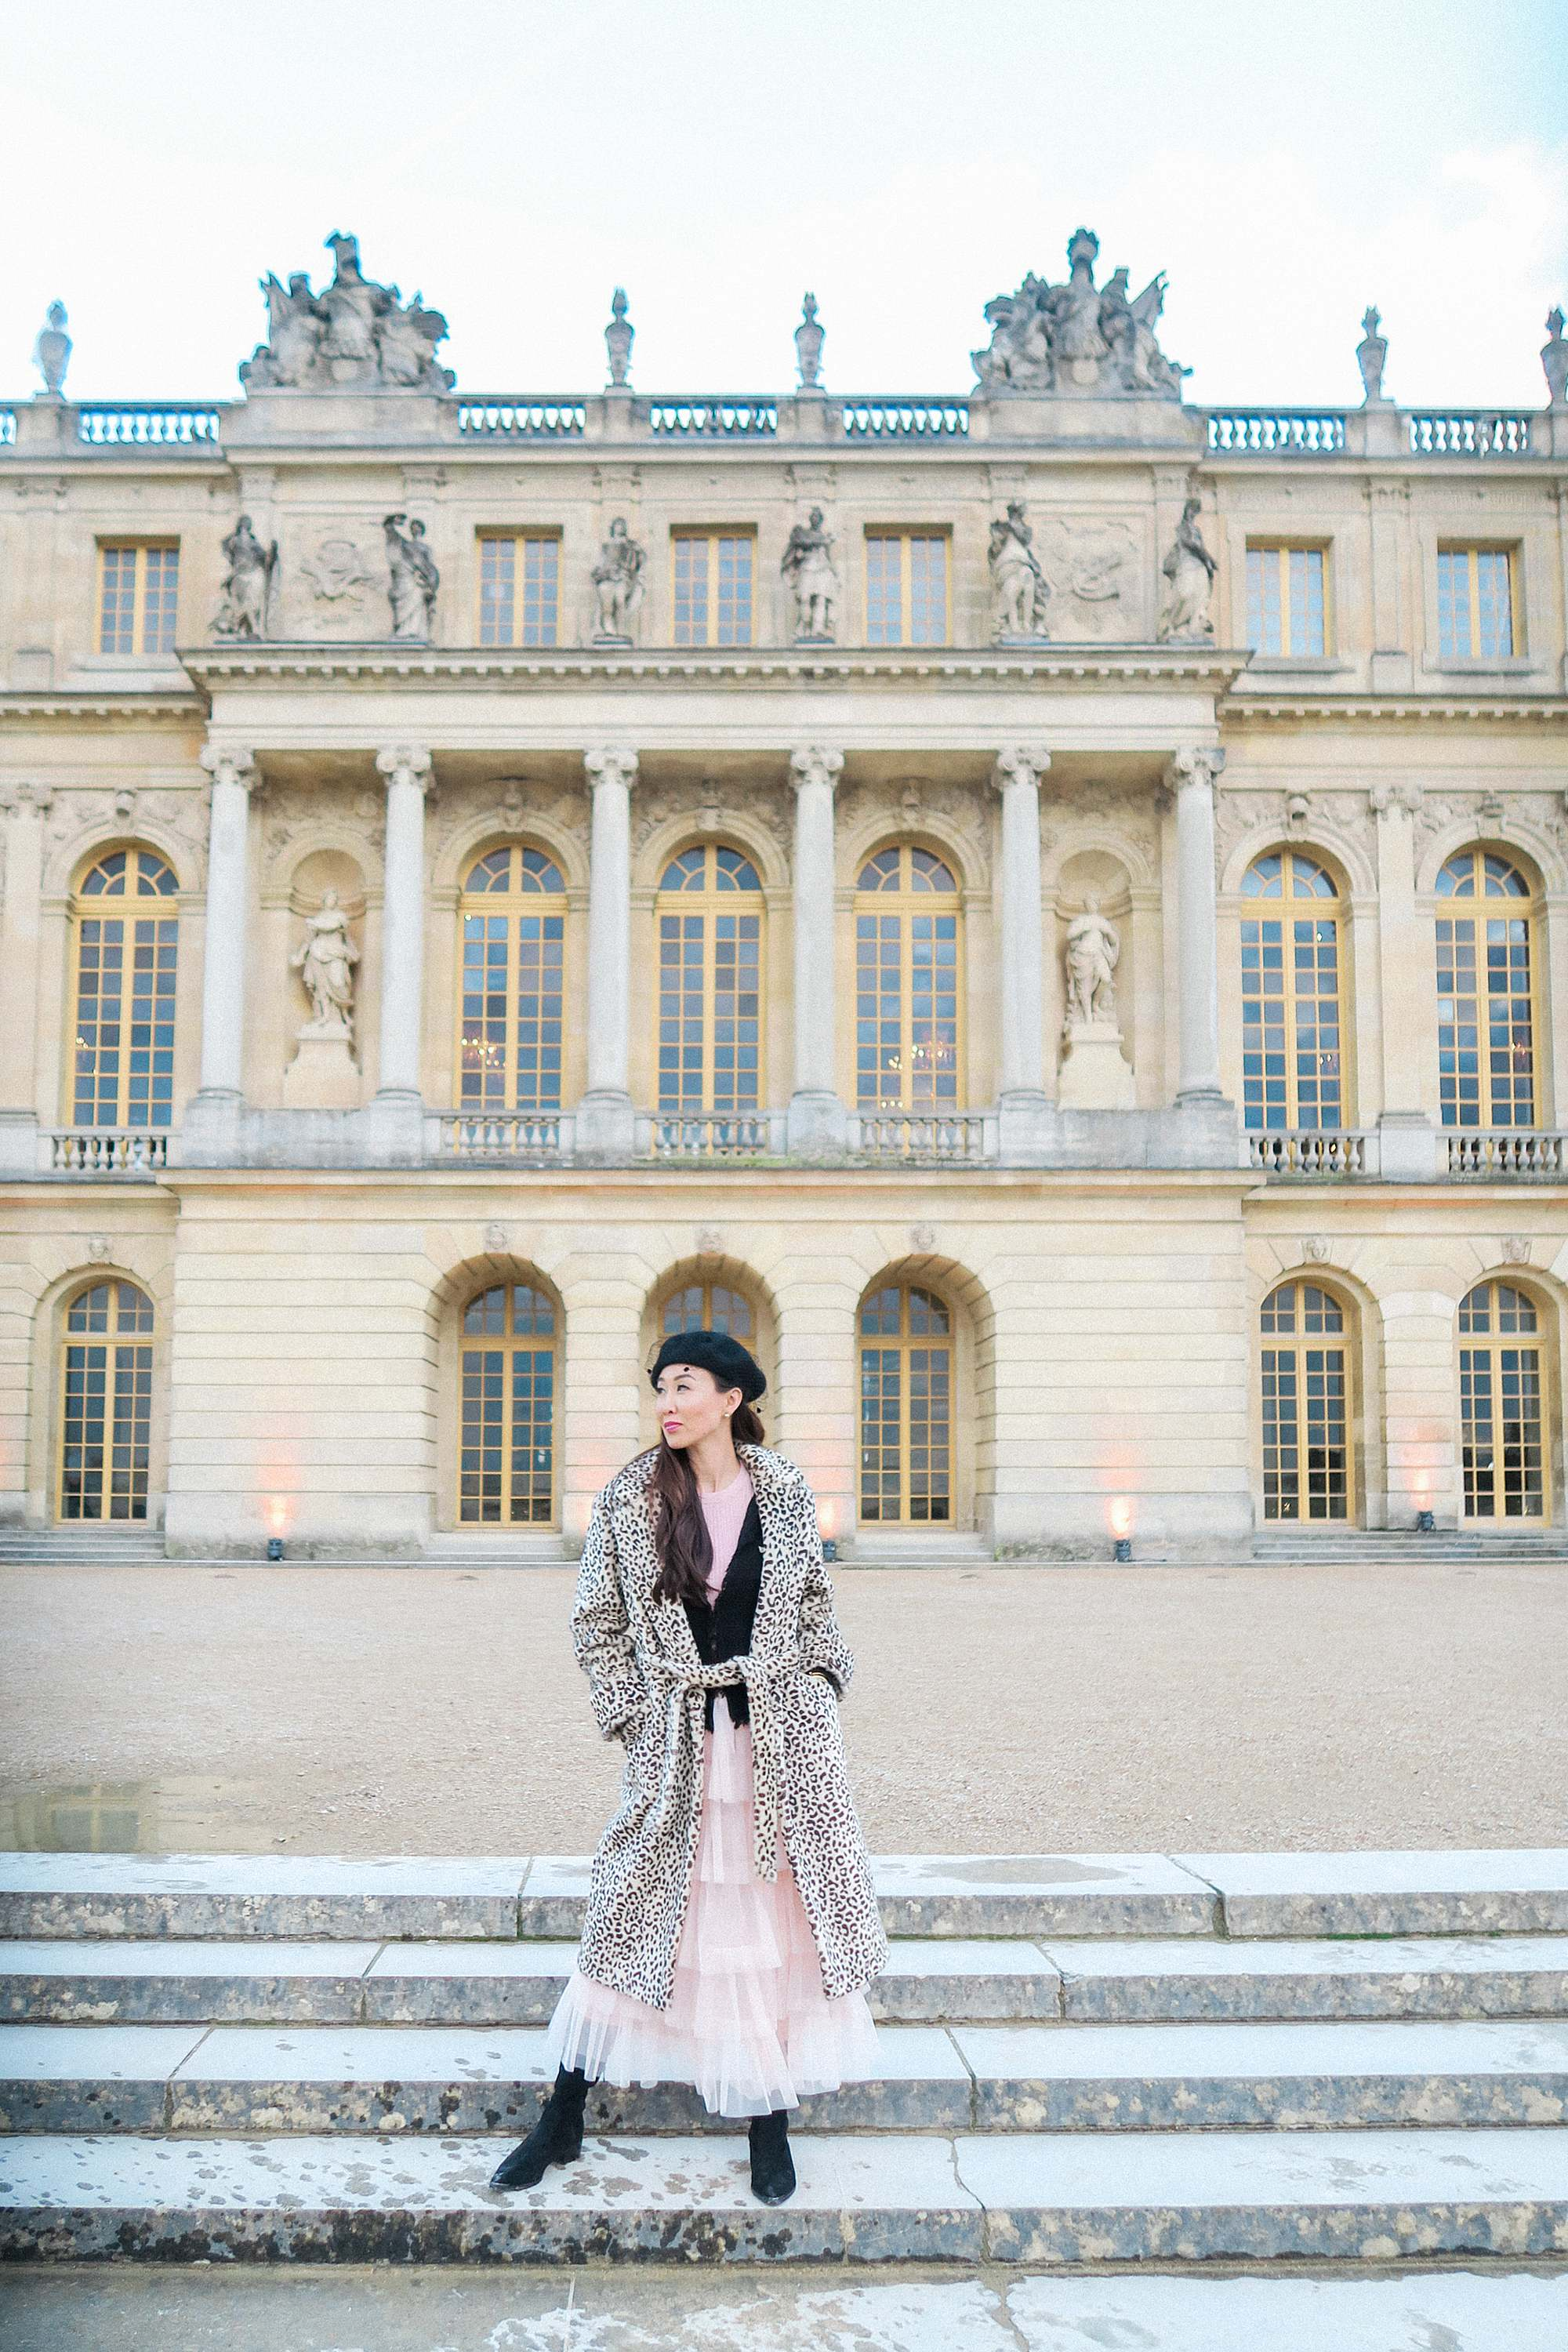 how to dress stylishly and comfortable while traveling - traveling tips versailles France pink tutu